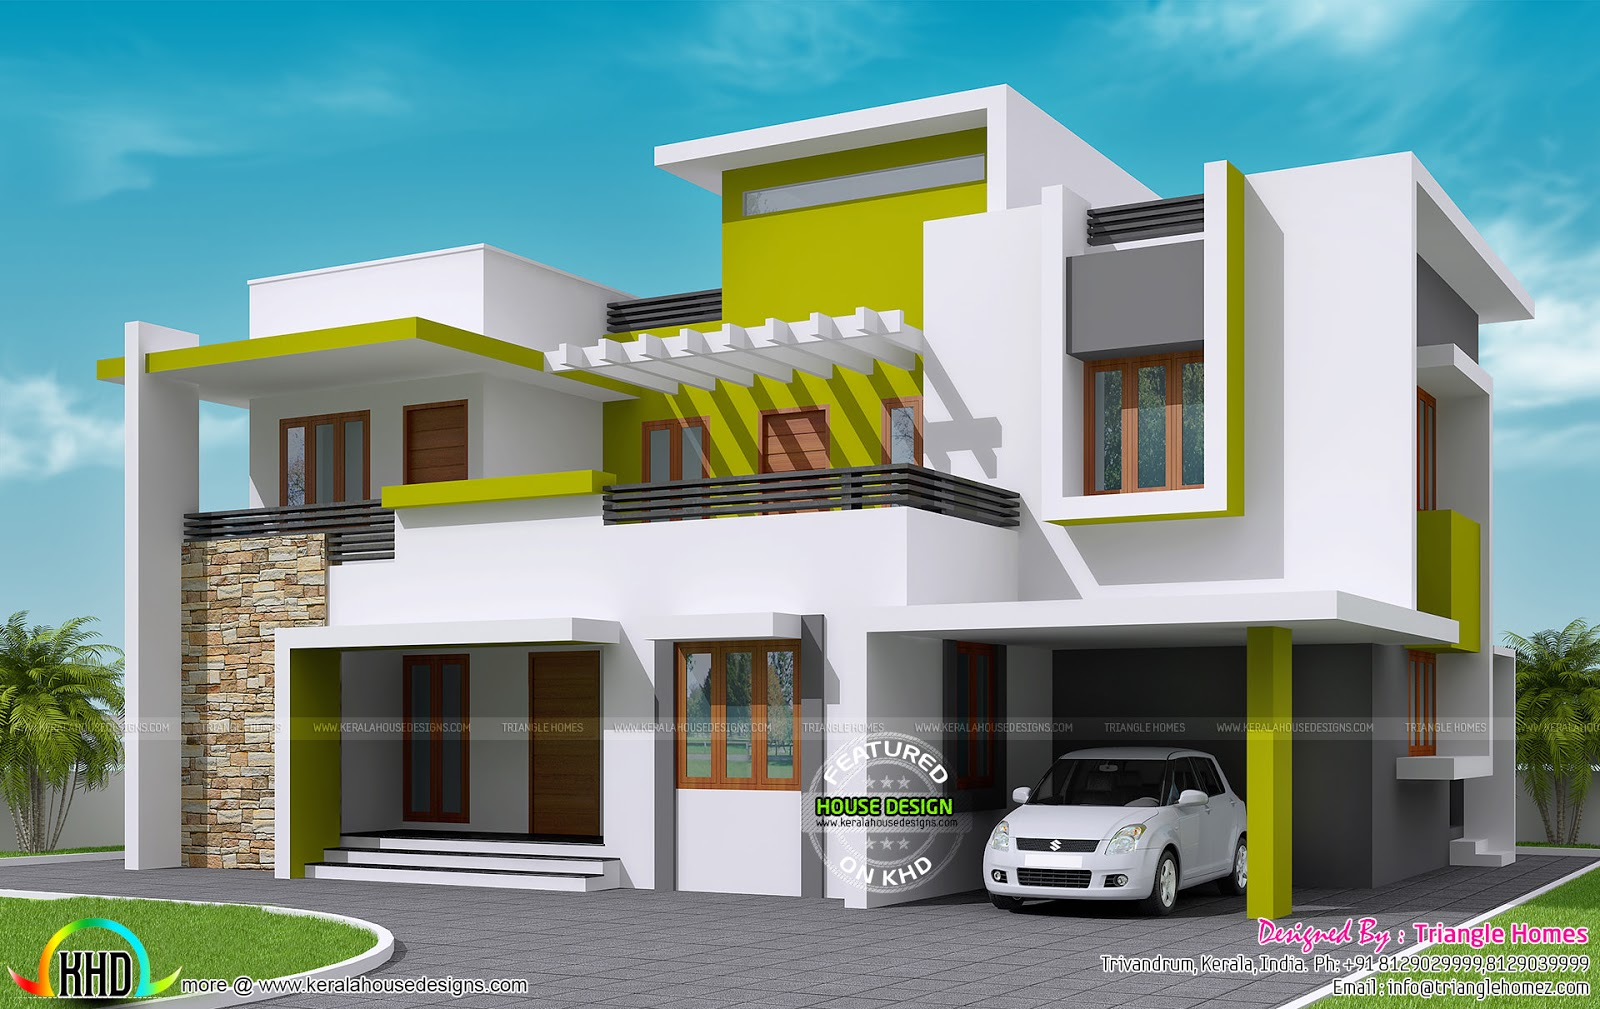 232 sq m contemporary house kerala home design and floor for Contemporary model house